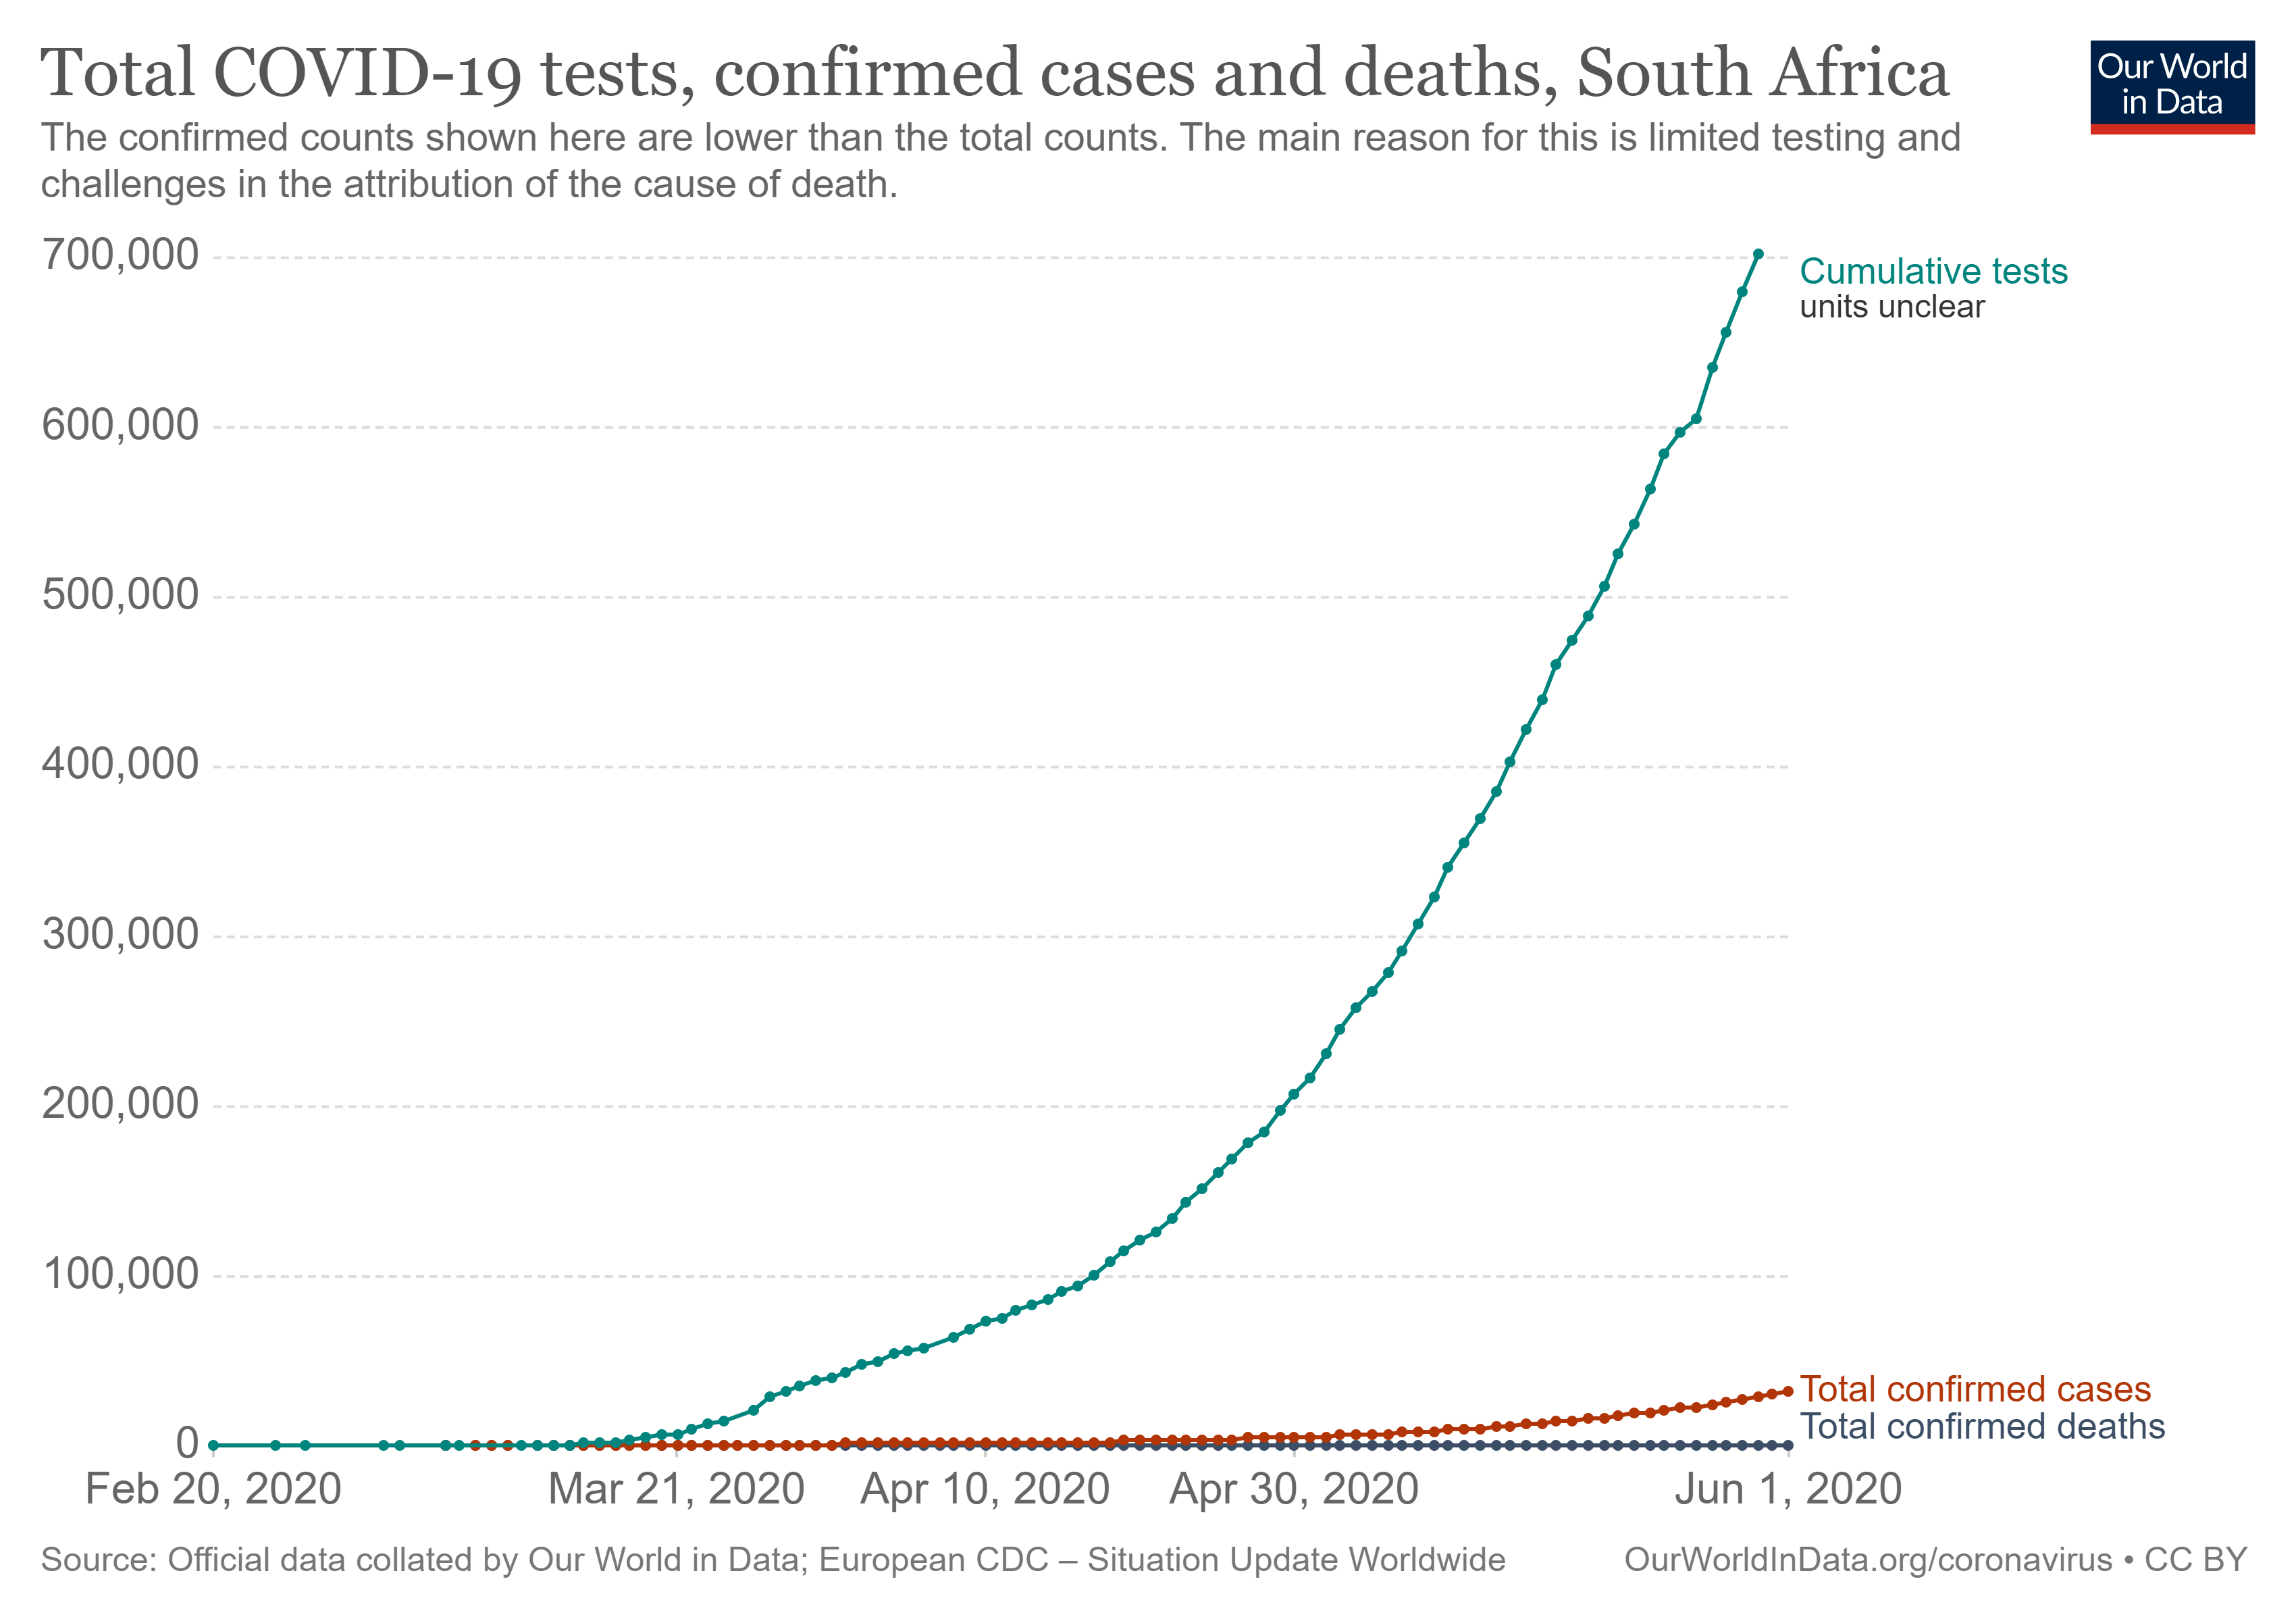 Figure 7: South Africa tests and cases (on linear scale)